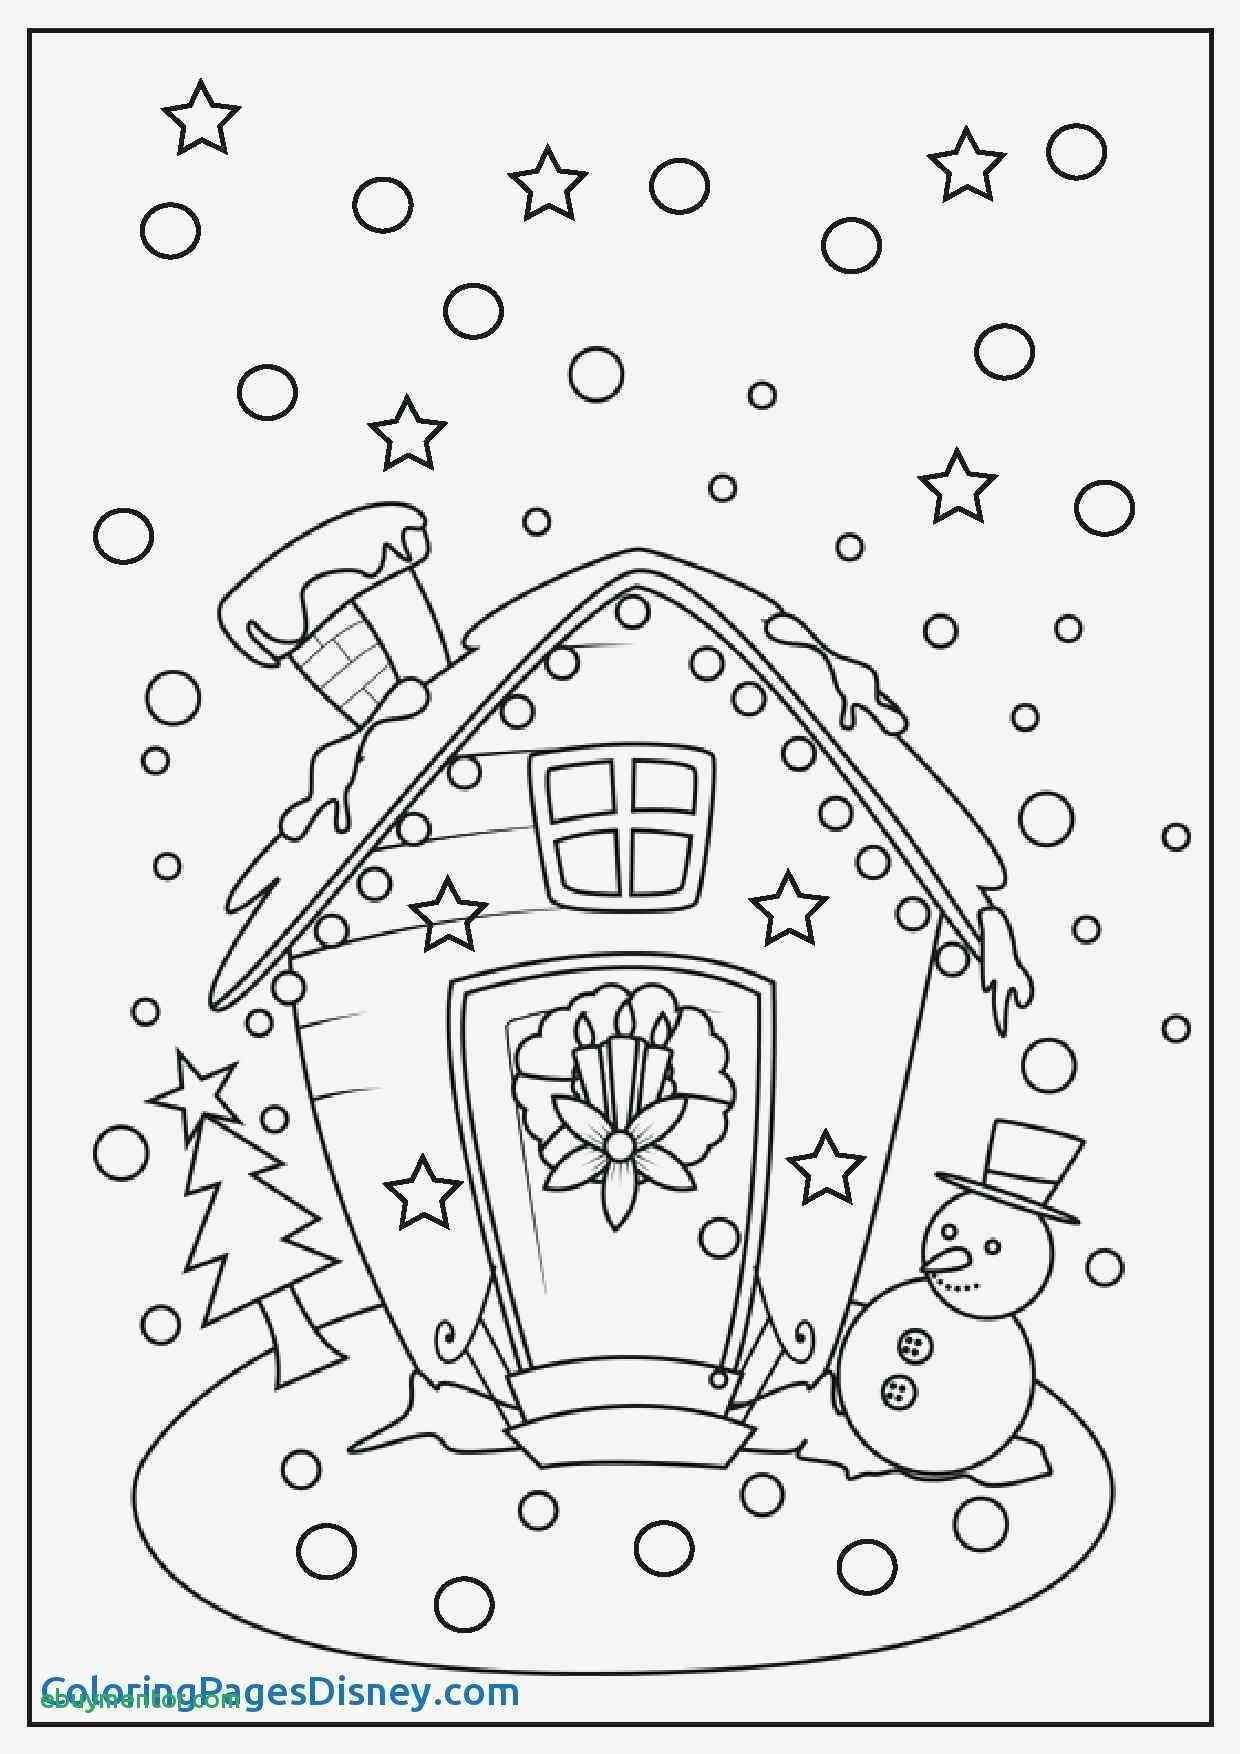 27 advent coloring pages catholic download coloring sheets. Black Bedroom Furniture Sets. Home Design Ideas